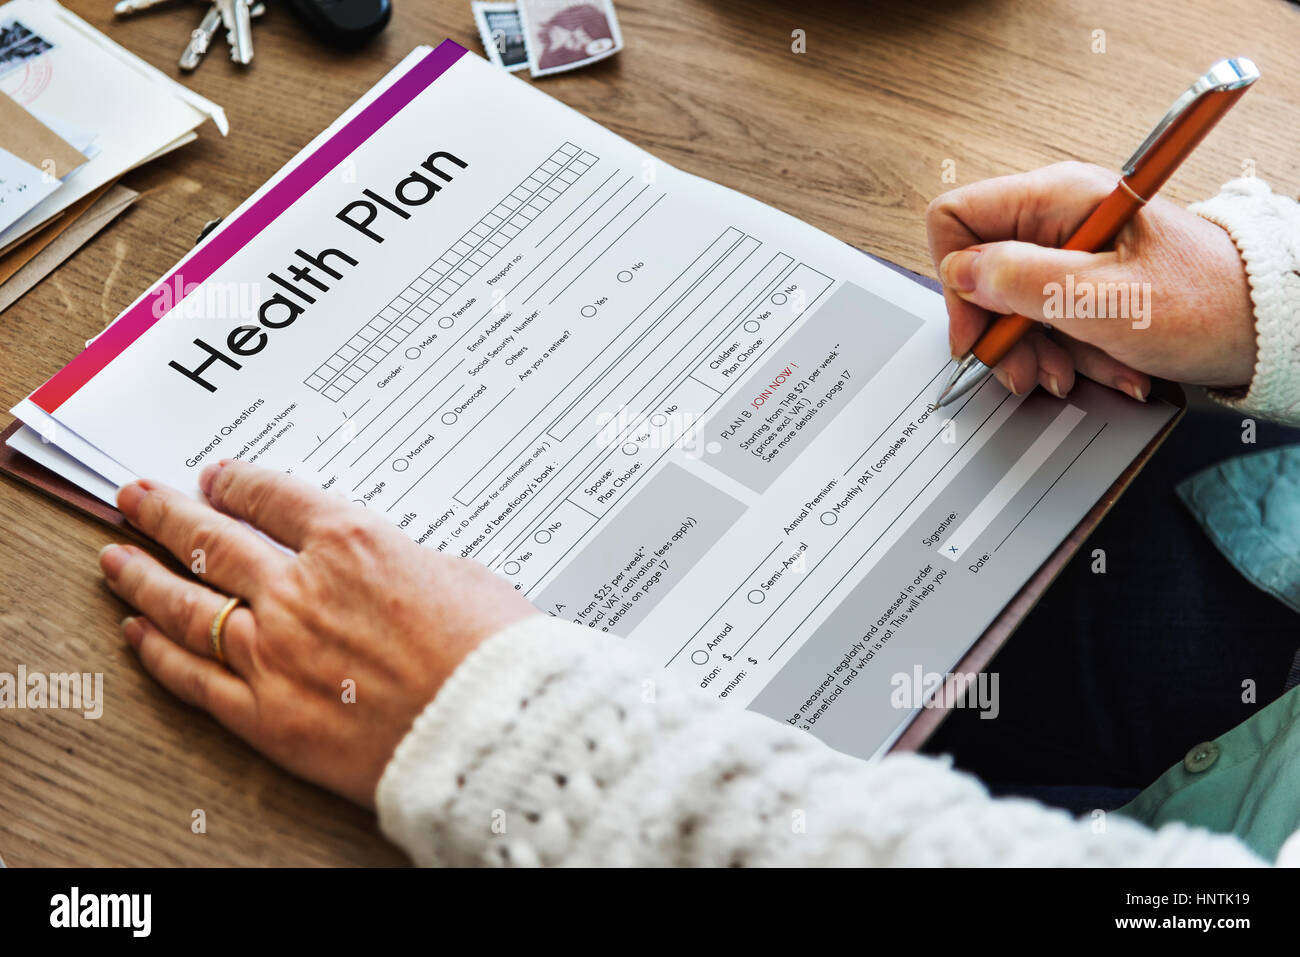 Health Plan Treatment Medical Document Form Concept - Stock Image